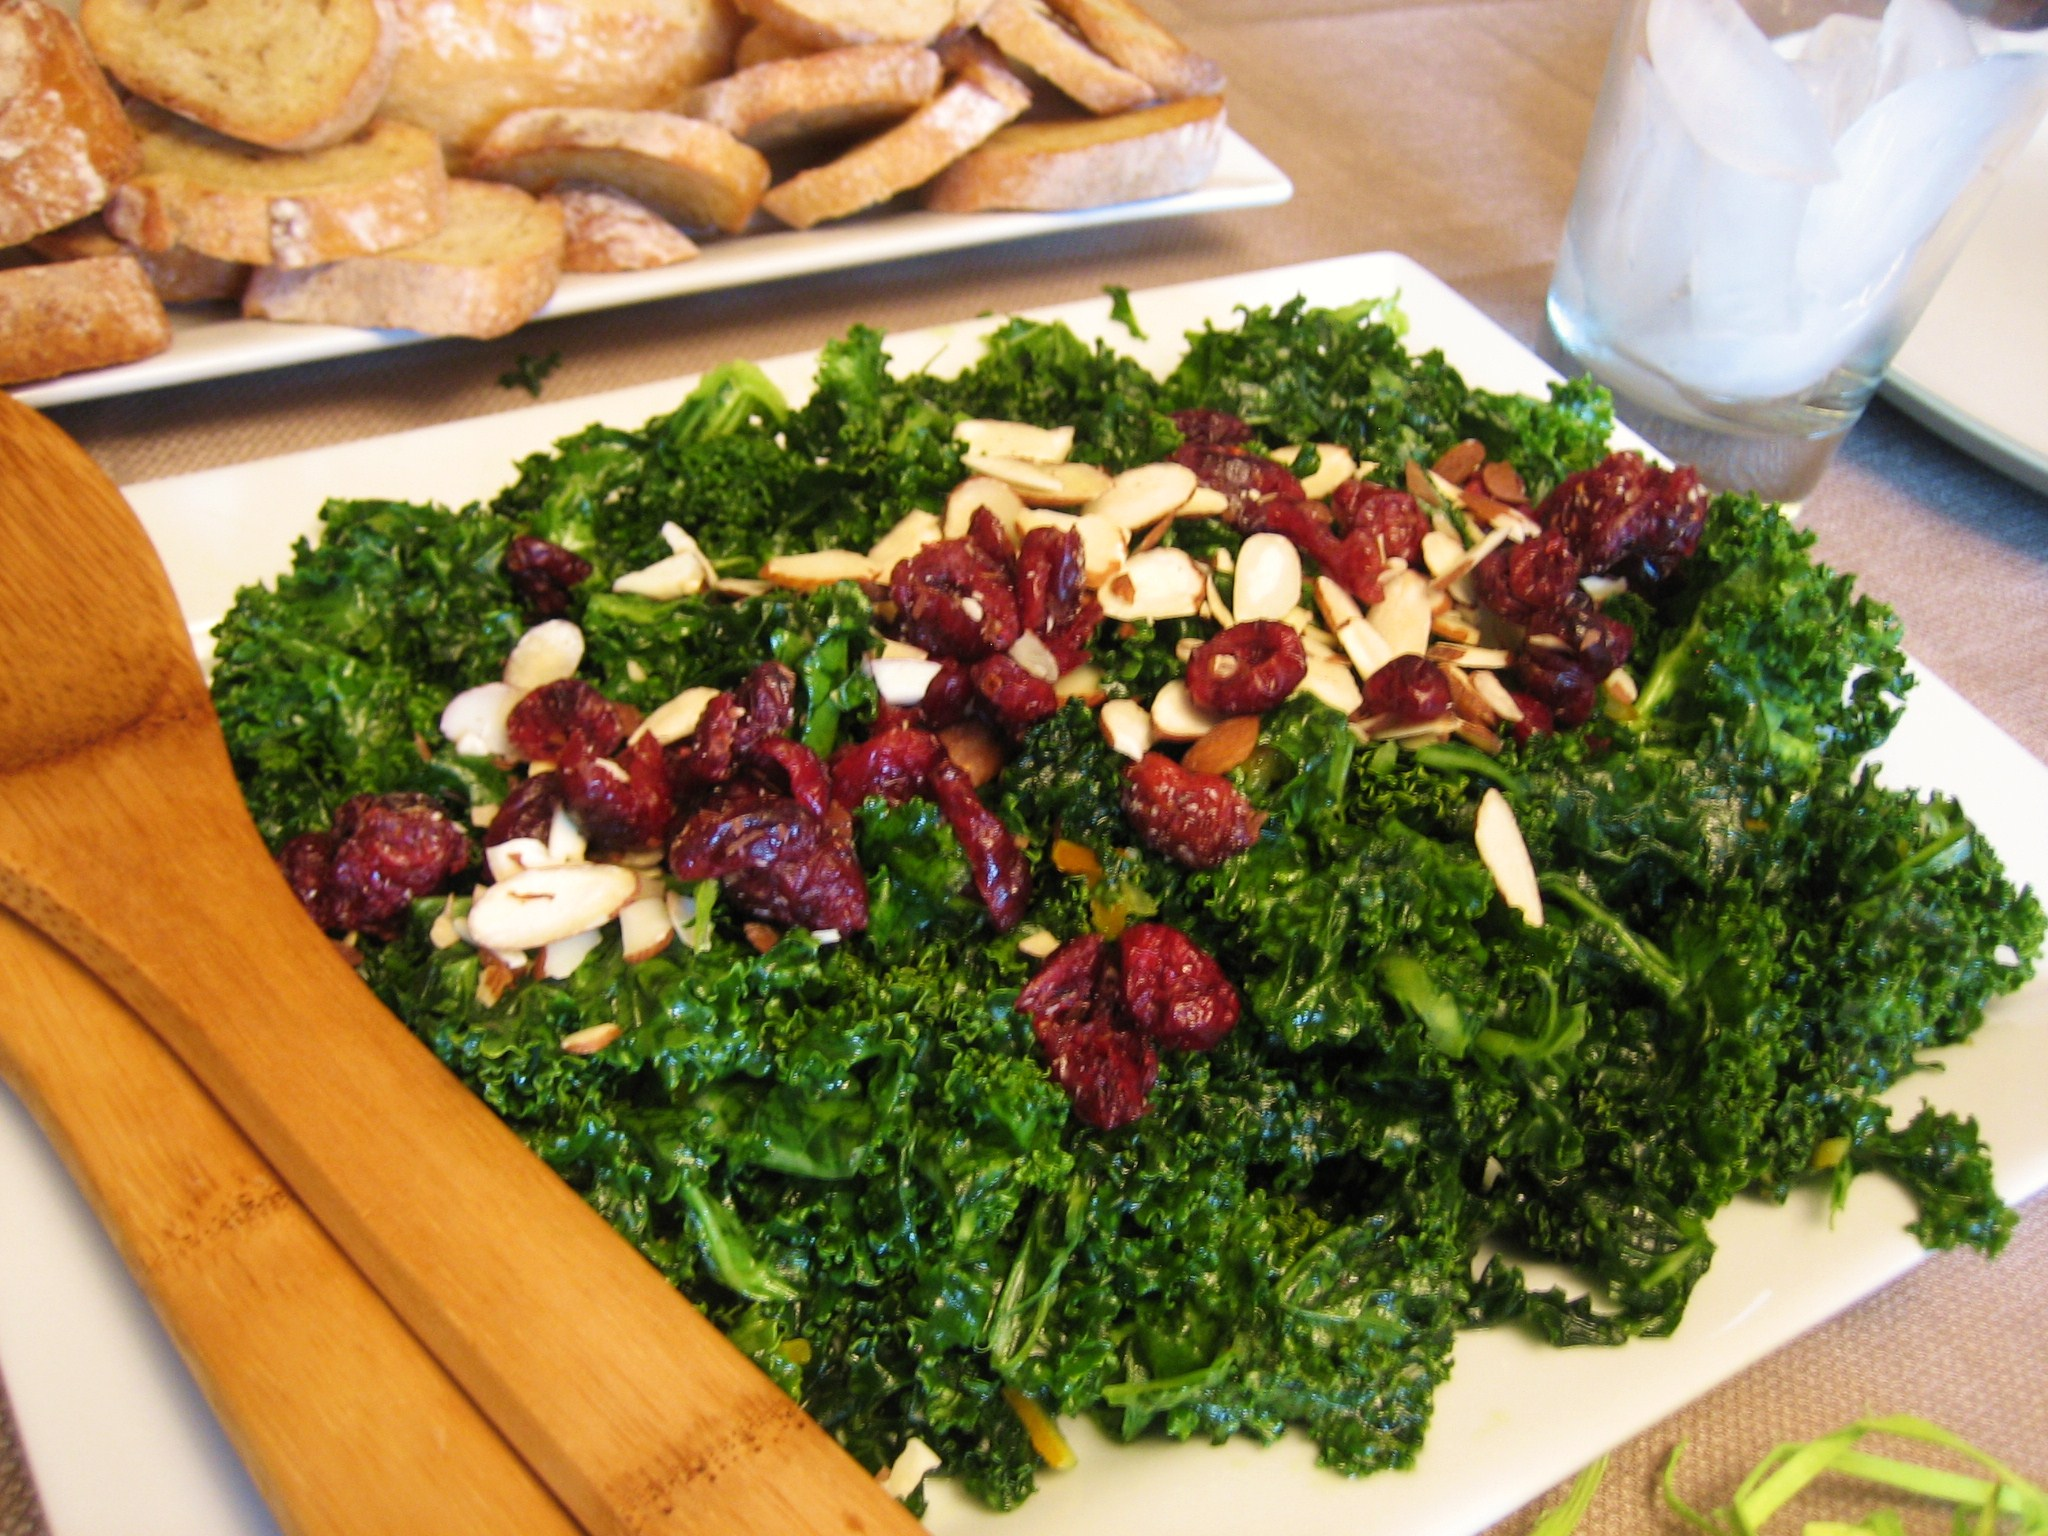 Whole Foods Kale Salad With Cranberries And Almonds